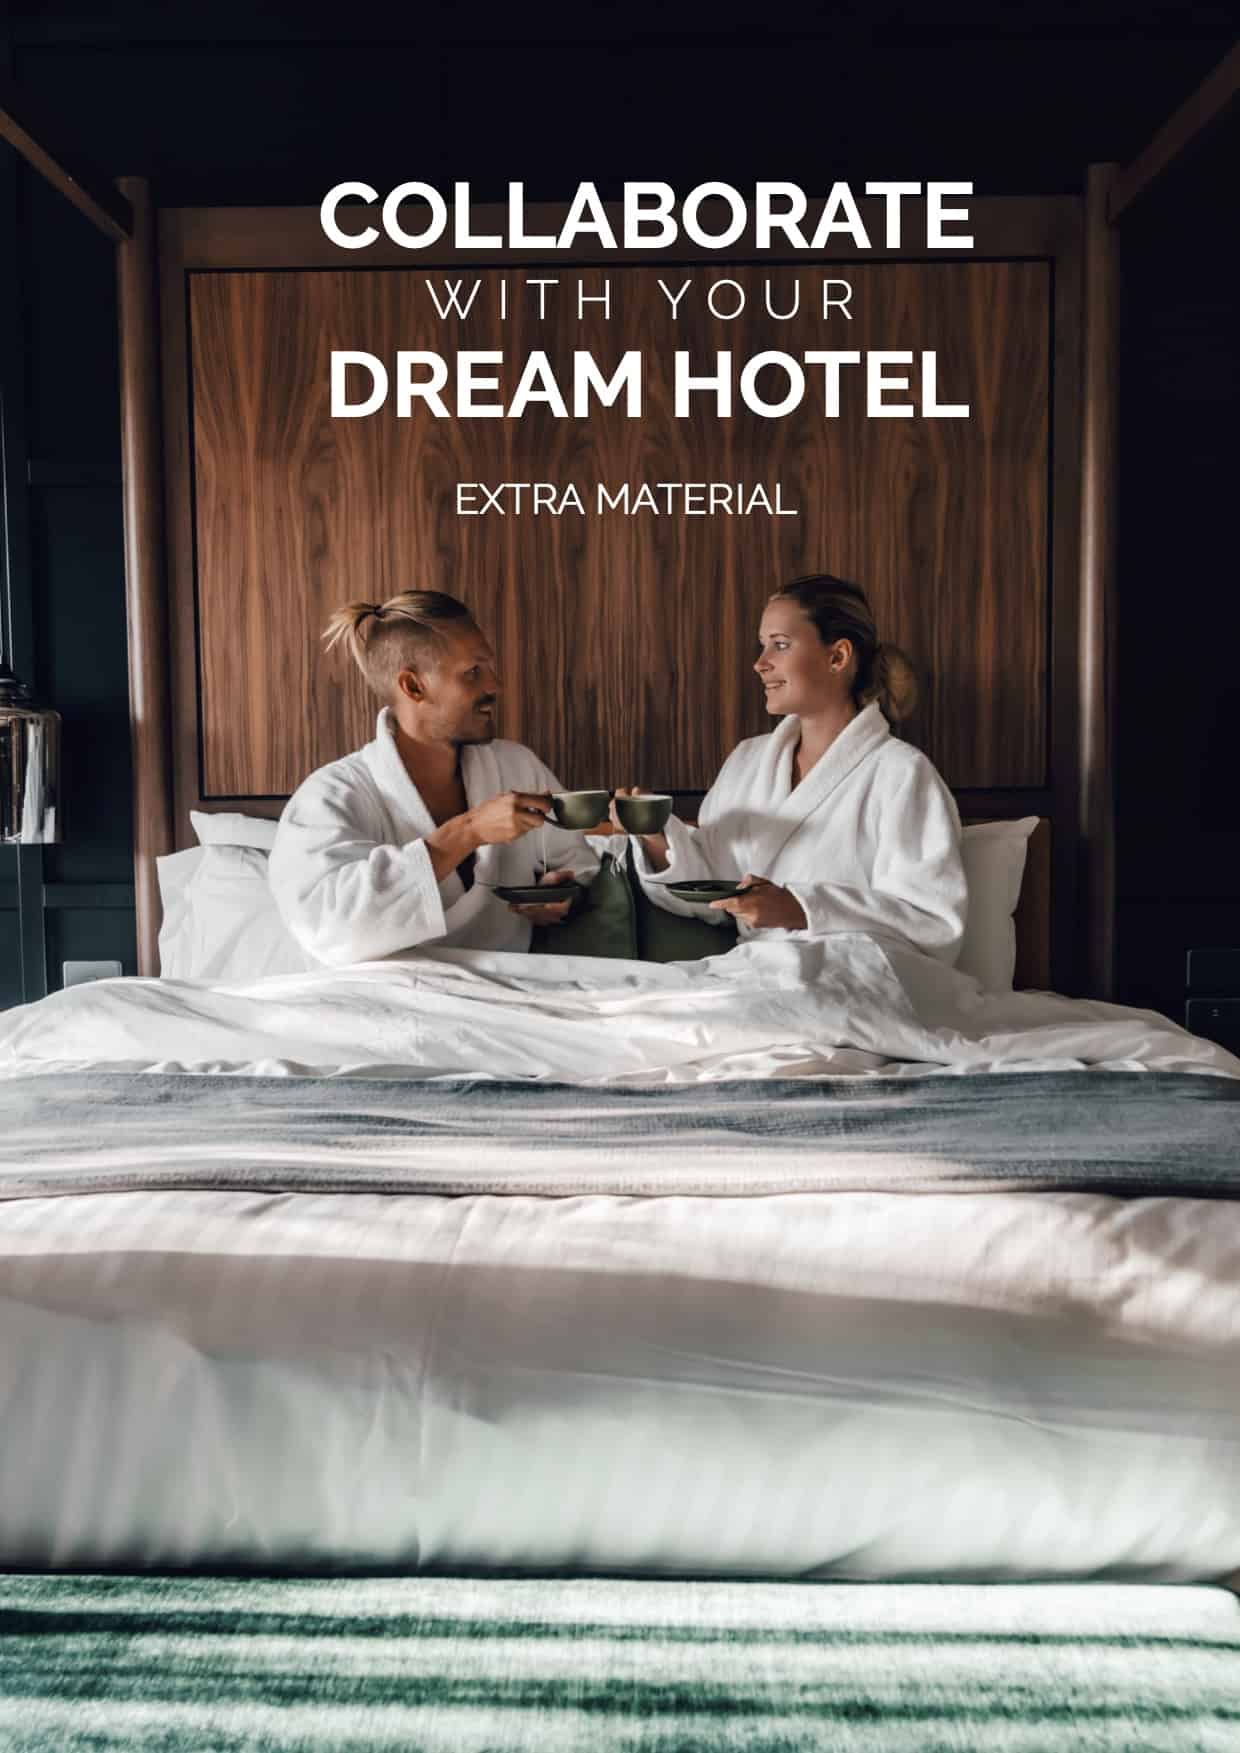 Collaborate with your dream hotel